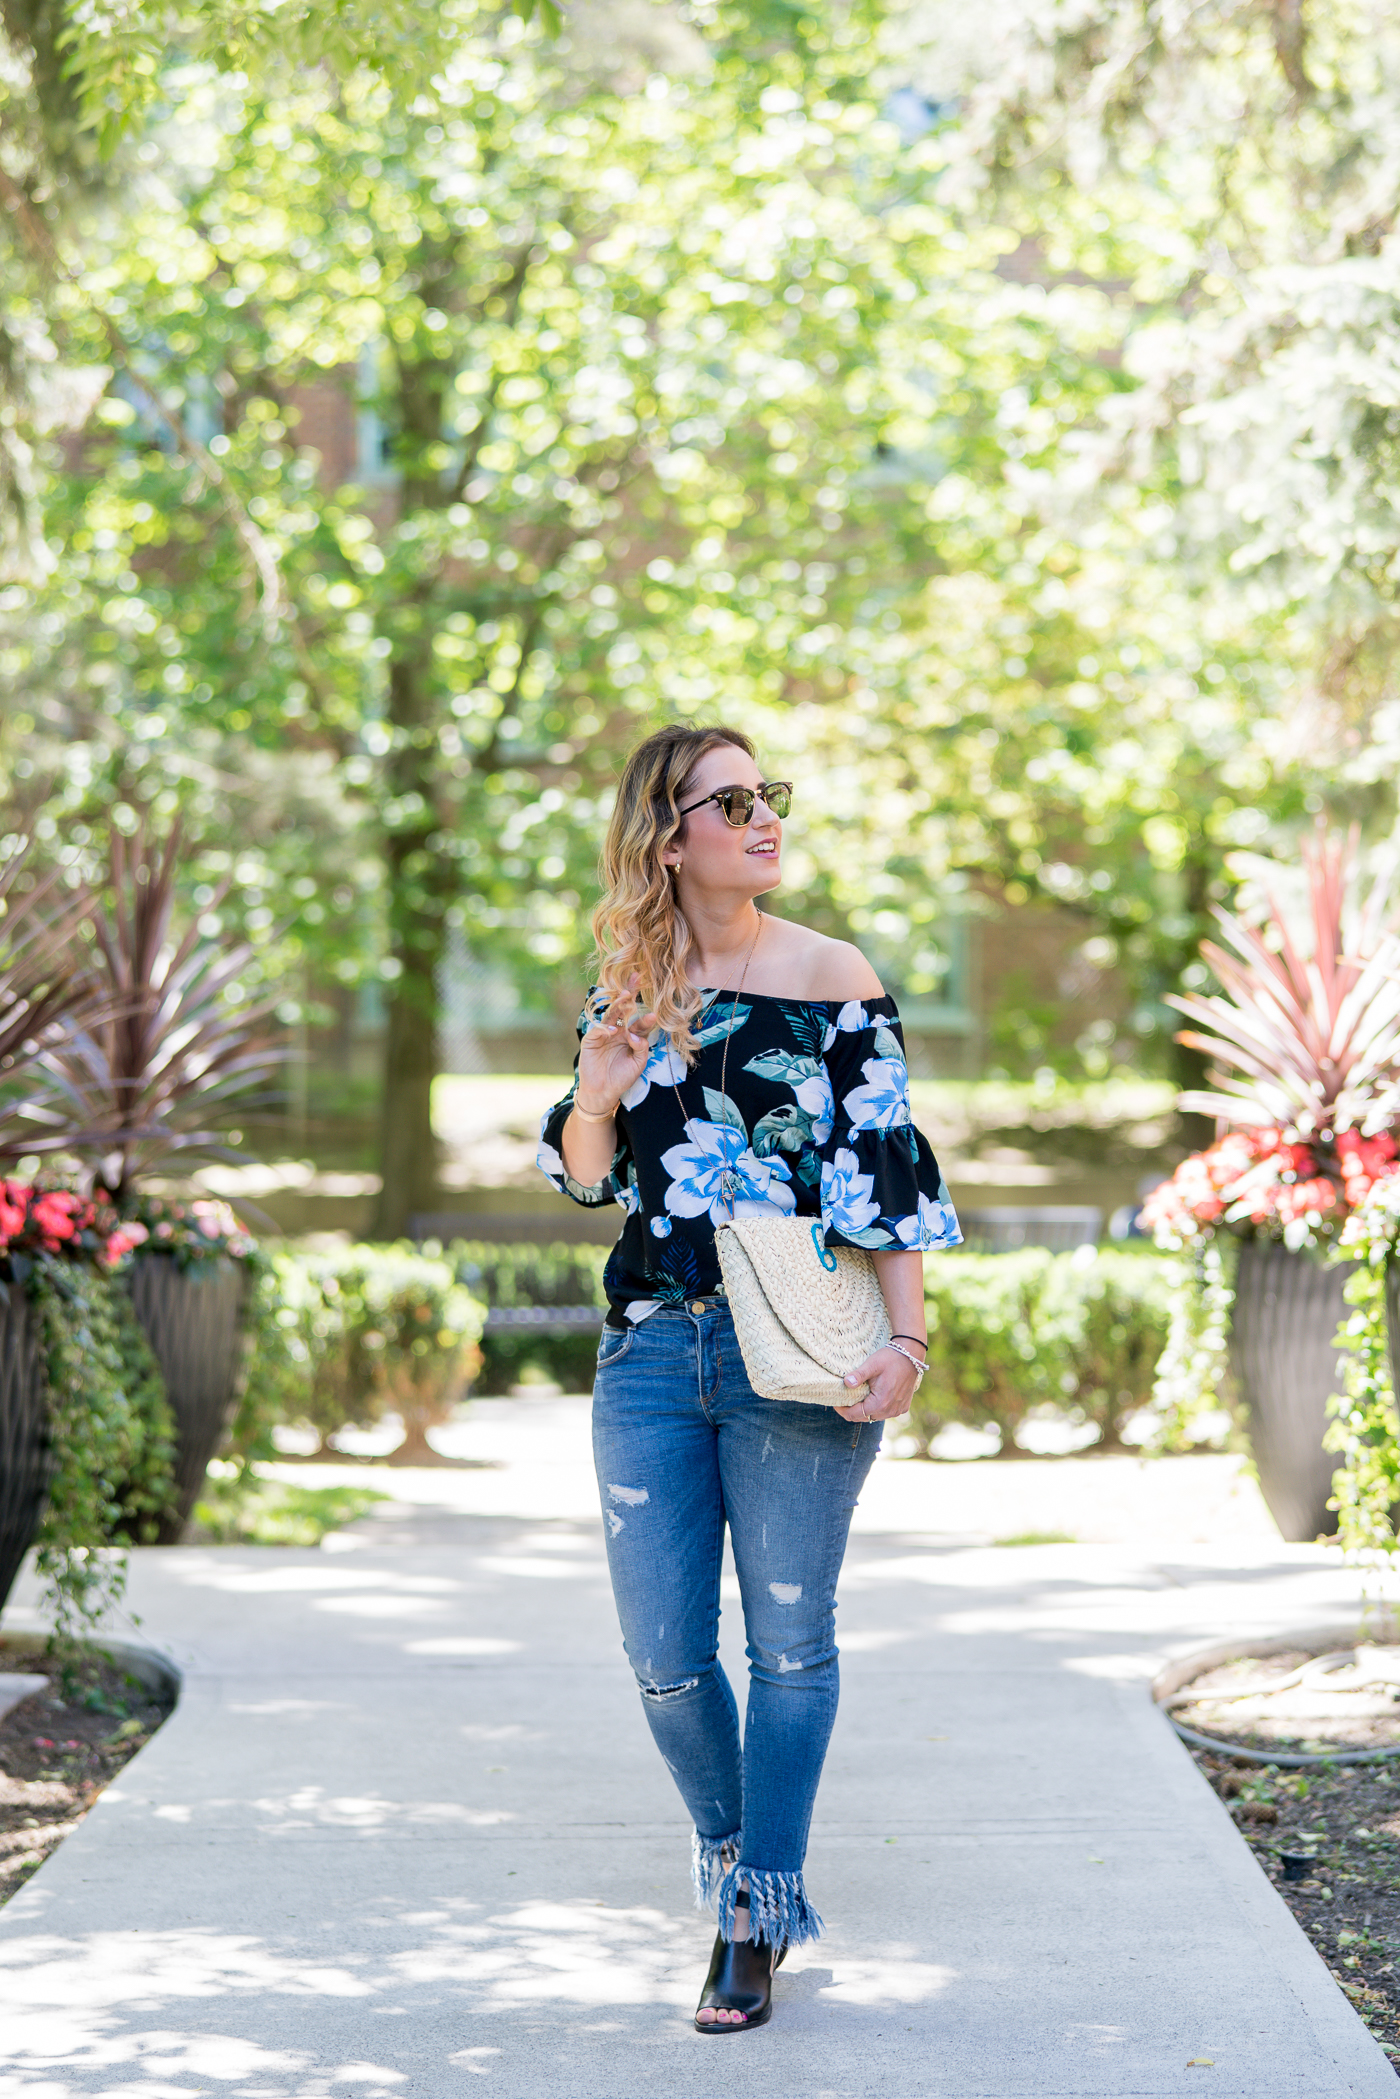 floral off the shoulder top from banana republic, with frayed hem jeans that look good when you're petite